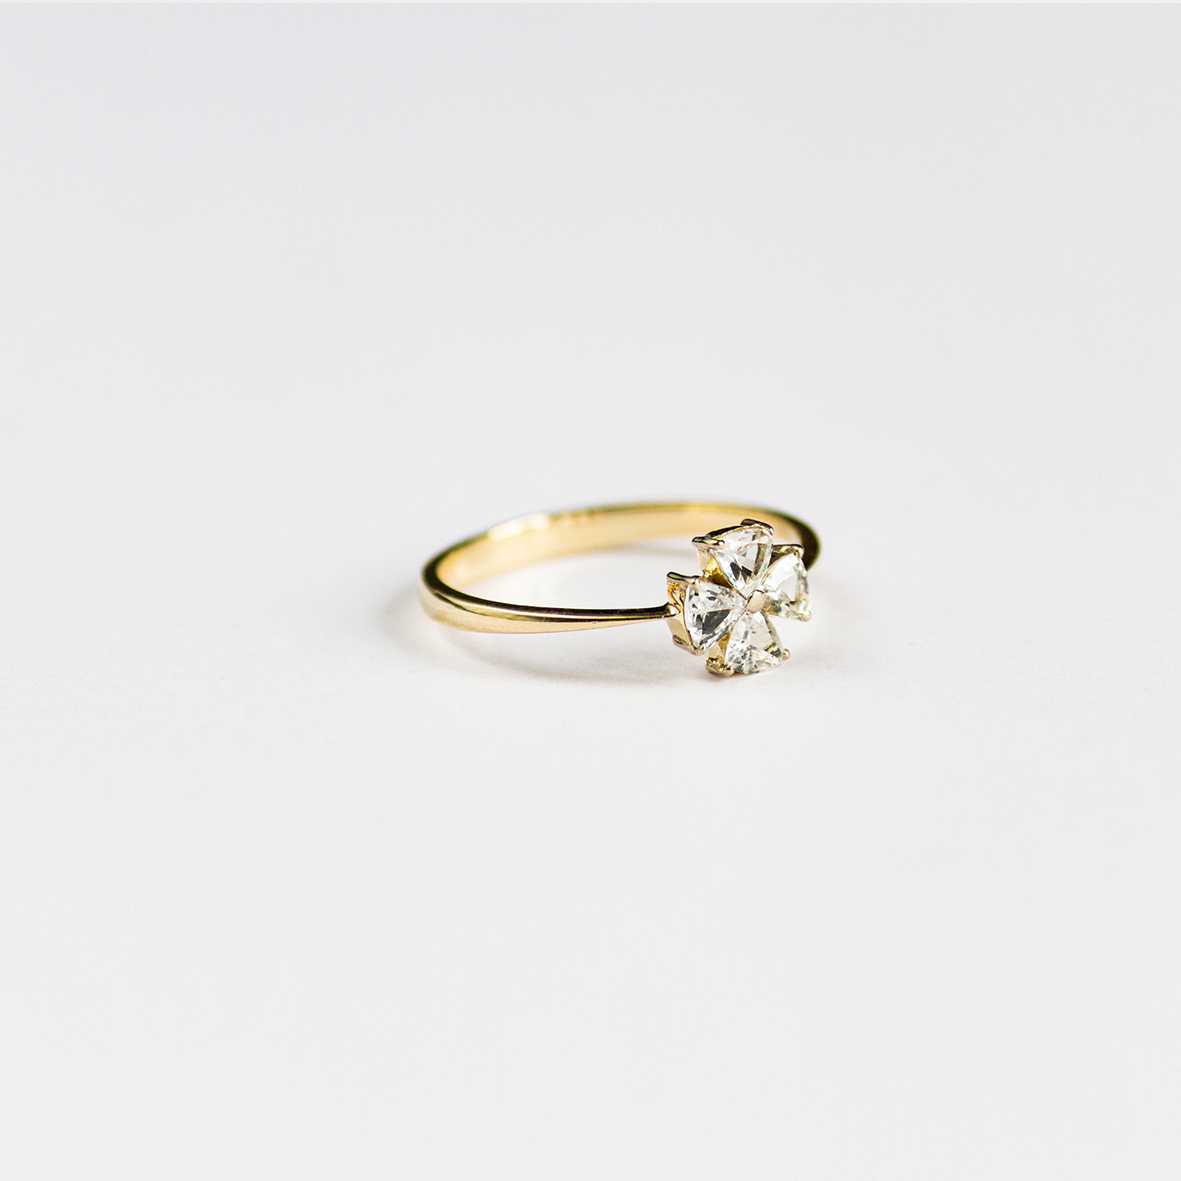 2. OONA_engagement_principal_sapphire clover ring